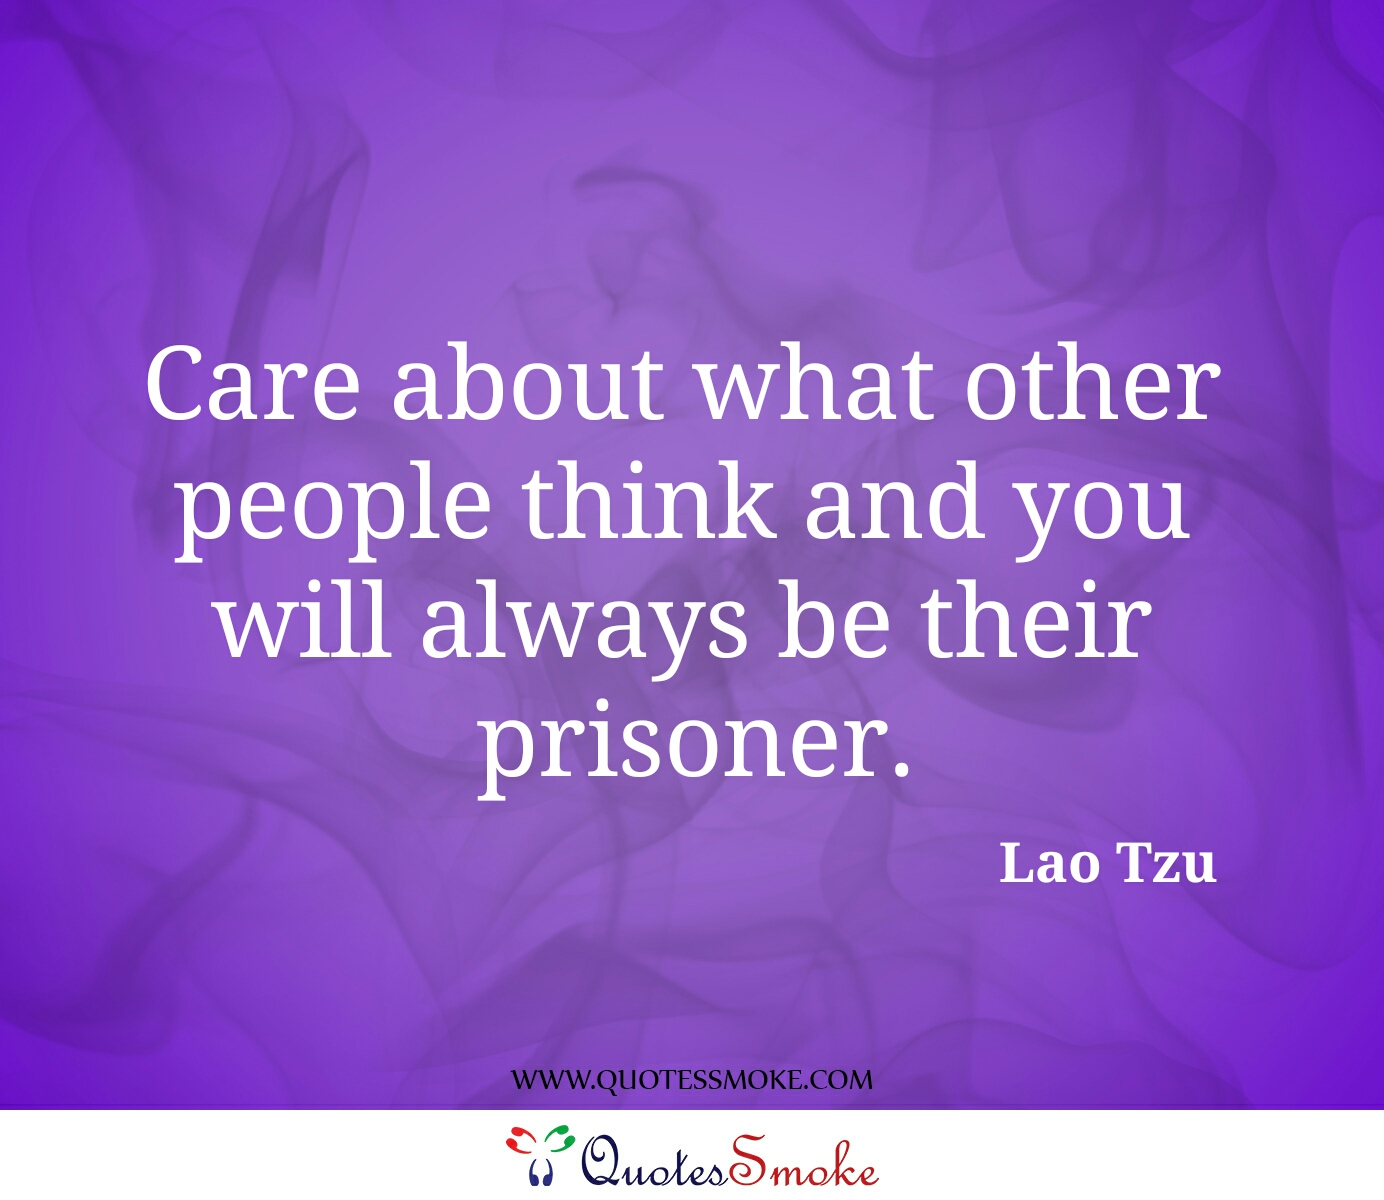 Lao Tzu Quotes Life 109 Lao Tzu Quotes That Will Influence Your Thinking  Quotes Smoke